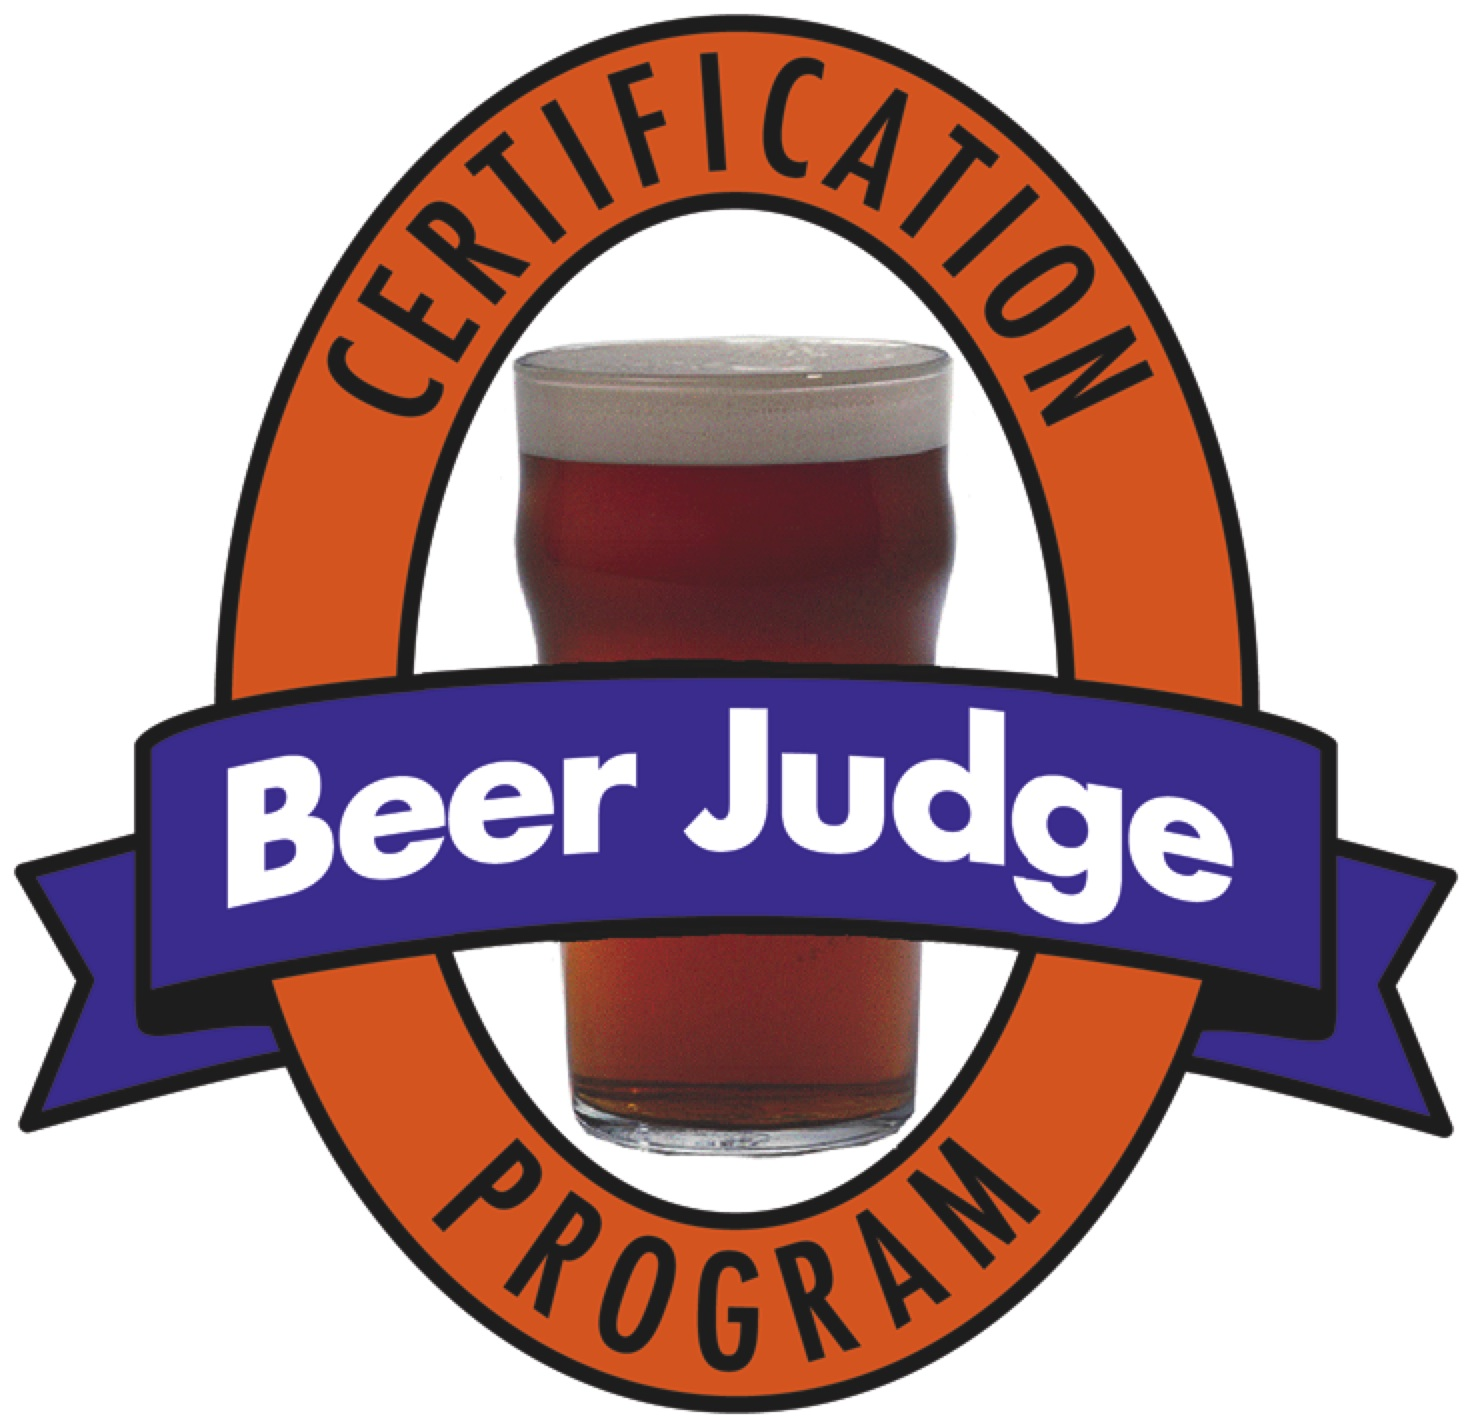 BJCP (Beer Judge Certification Program) 2015